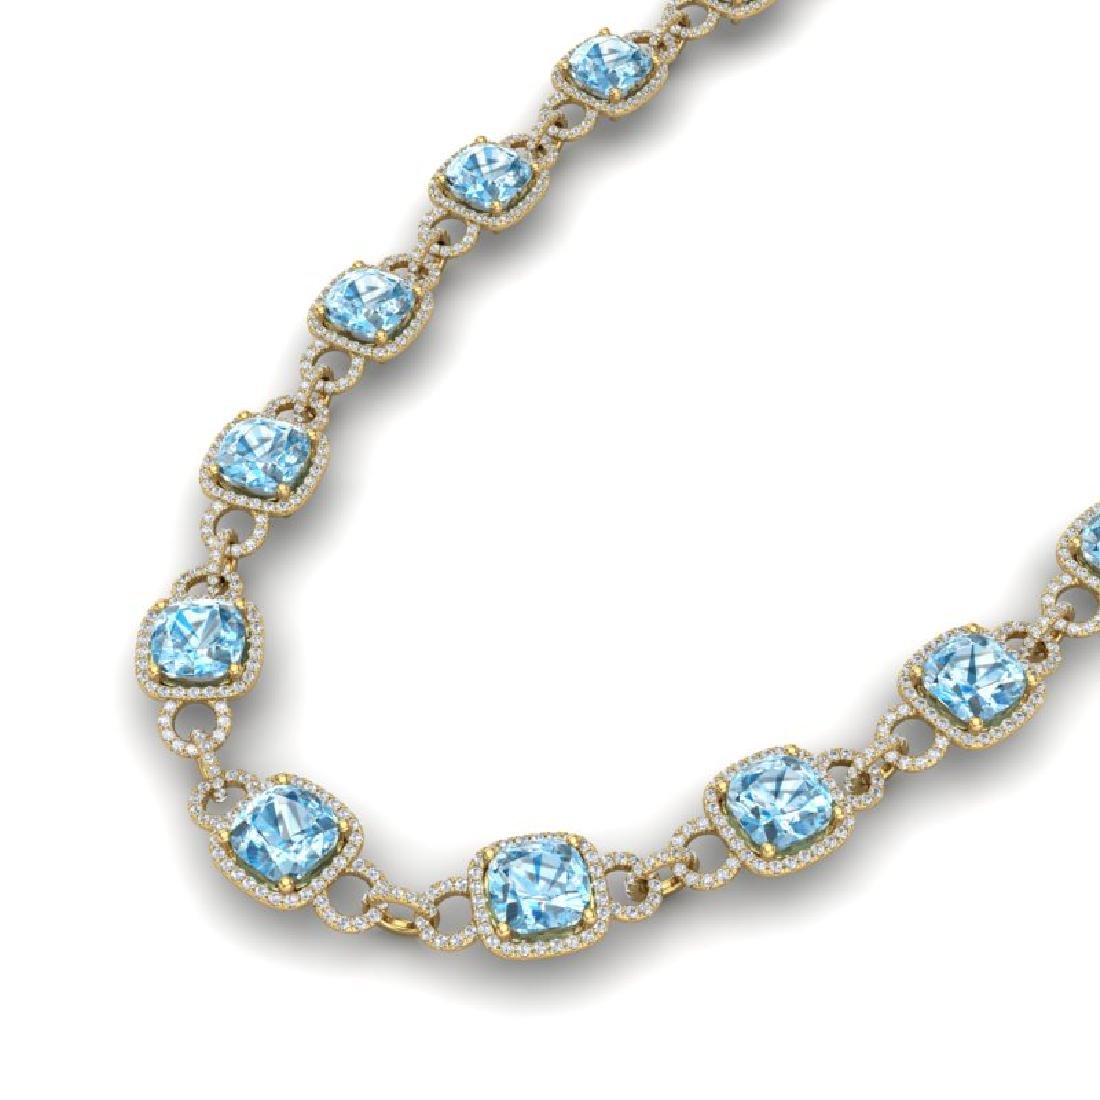 66 CTW Topaz & VS/SI Diamond Necklace 14K Yellow Gold